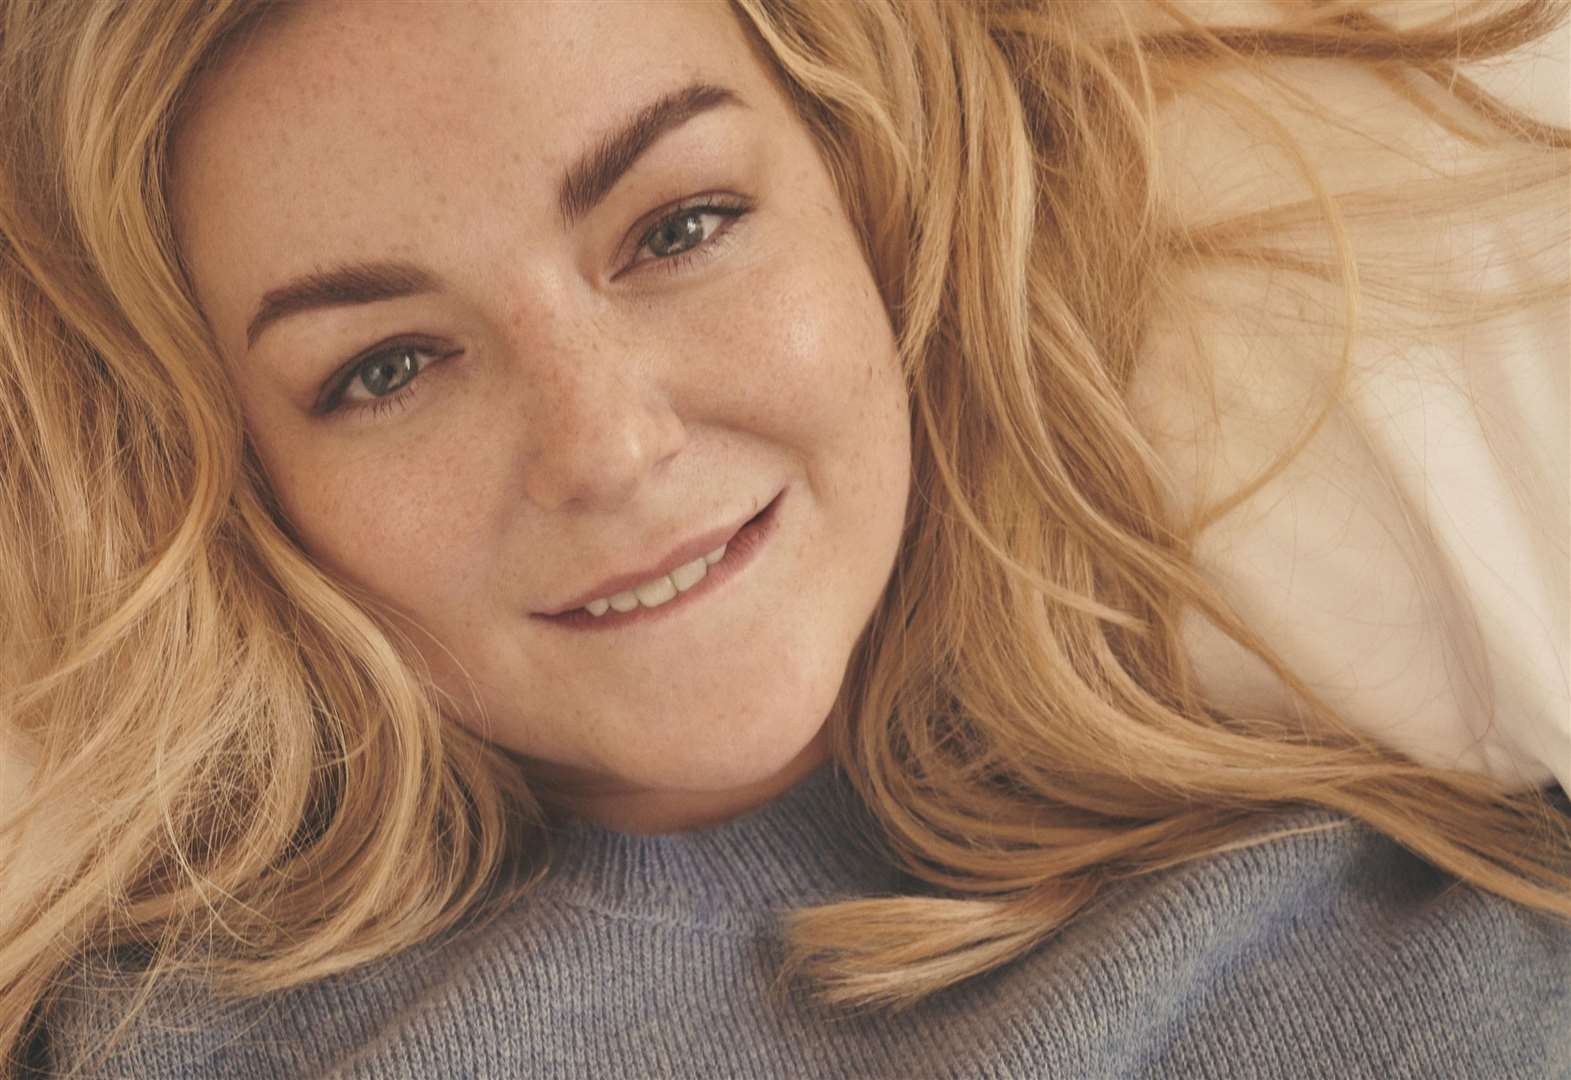 ALBUM REVIEW: A Northern Soul - Sheridan Smith